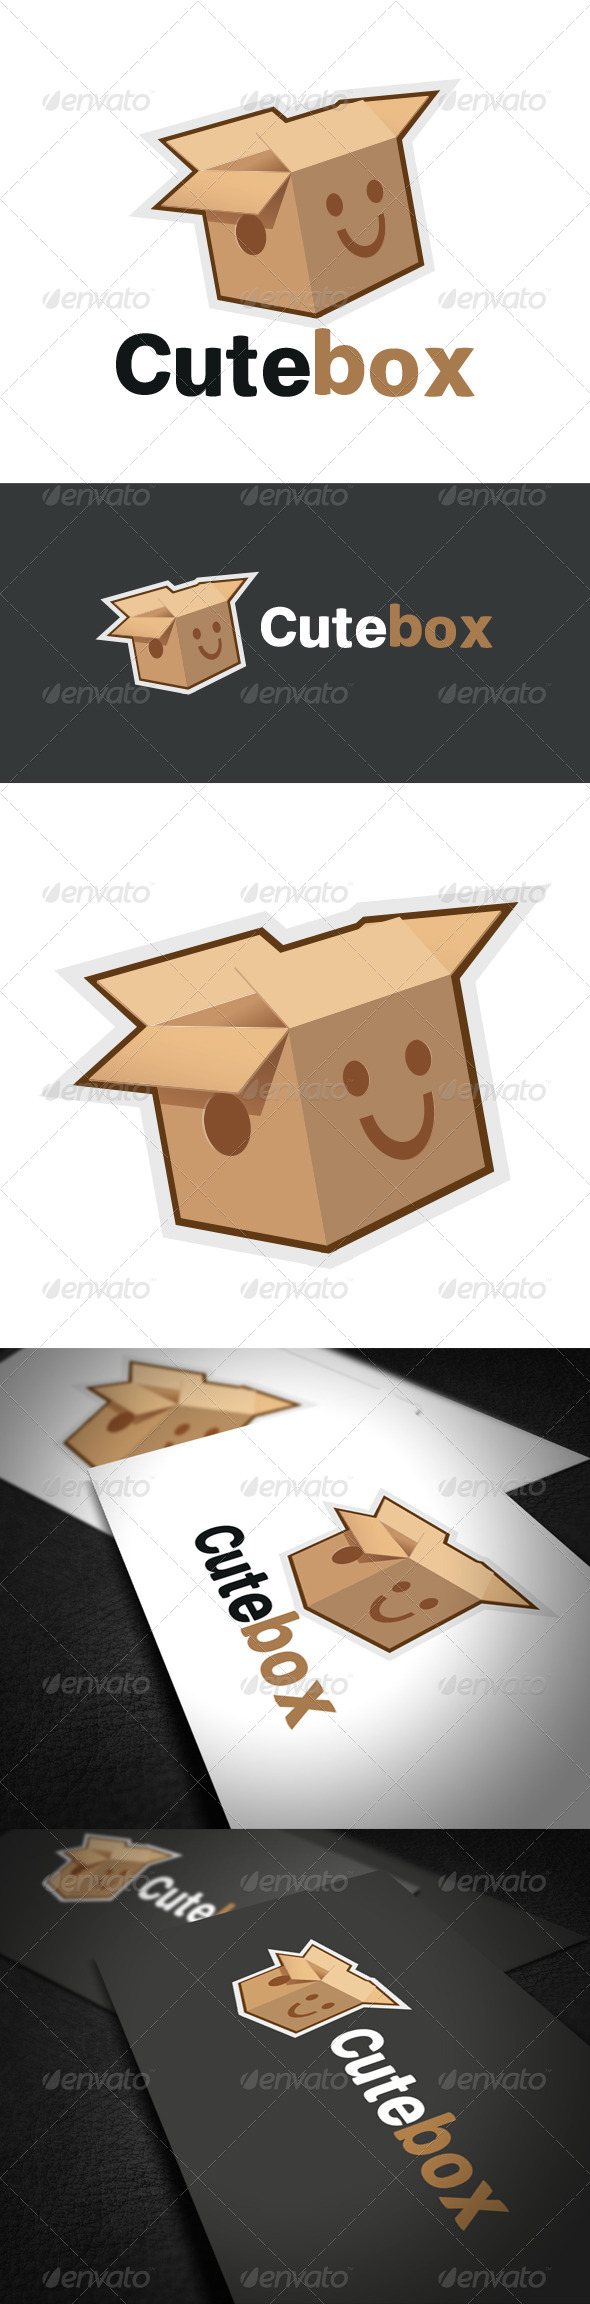 GraphicRiver Cute Box Logo 6148988